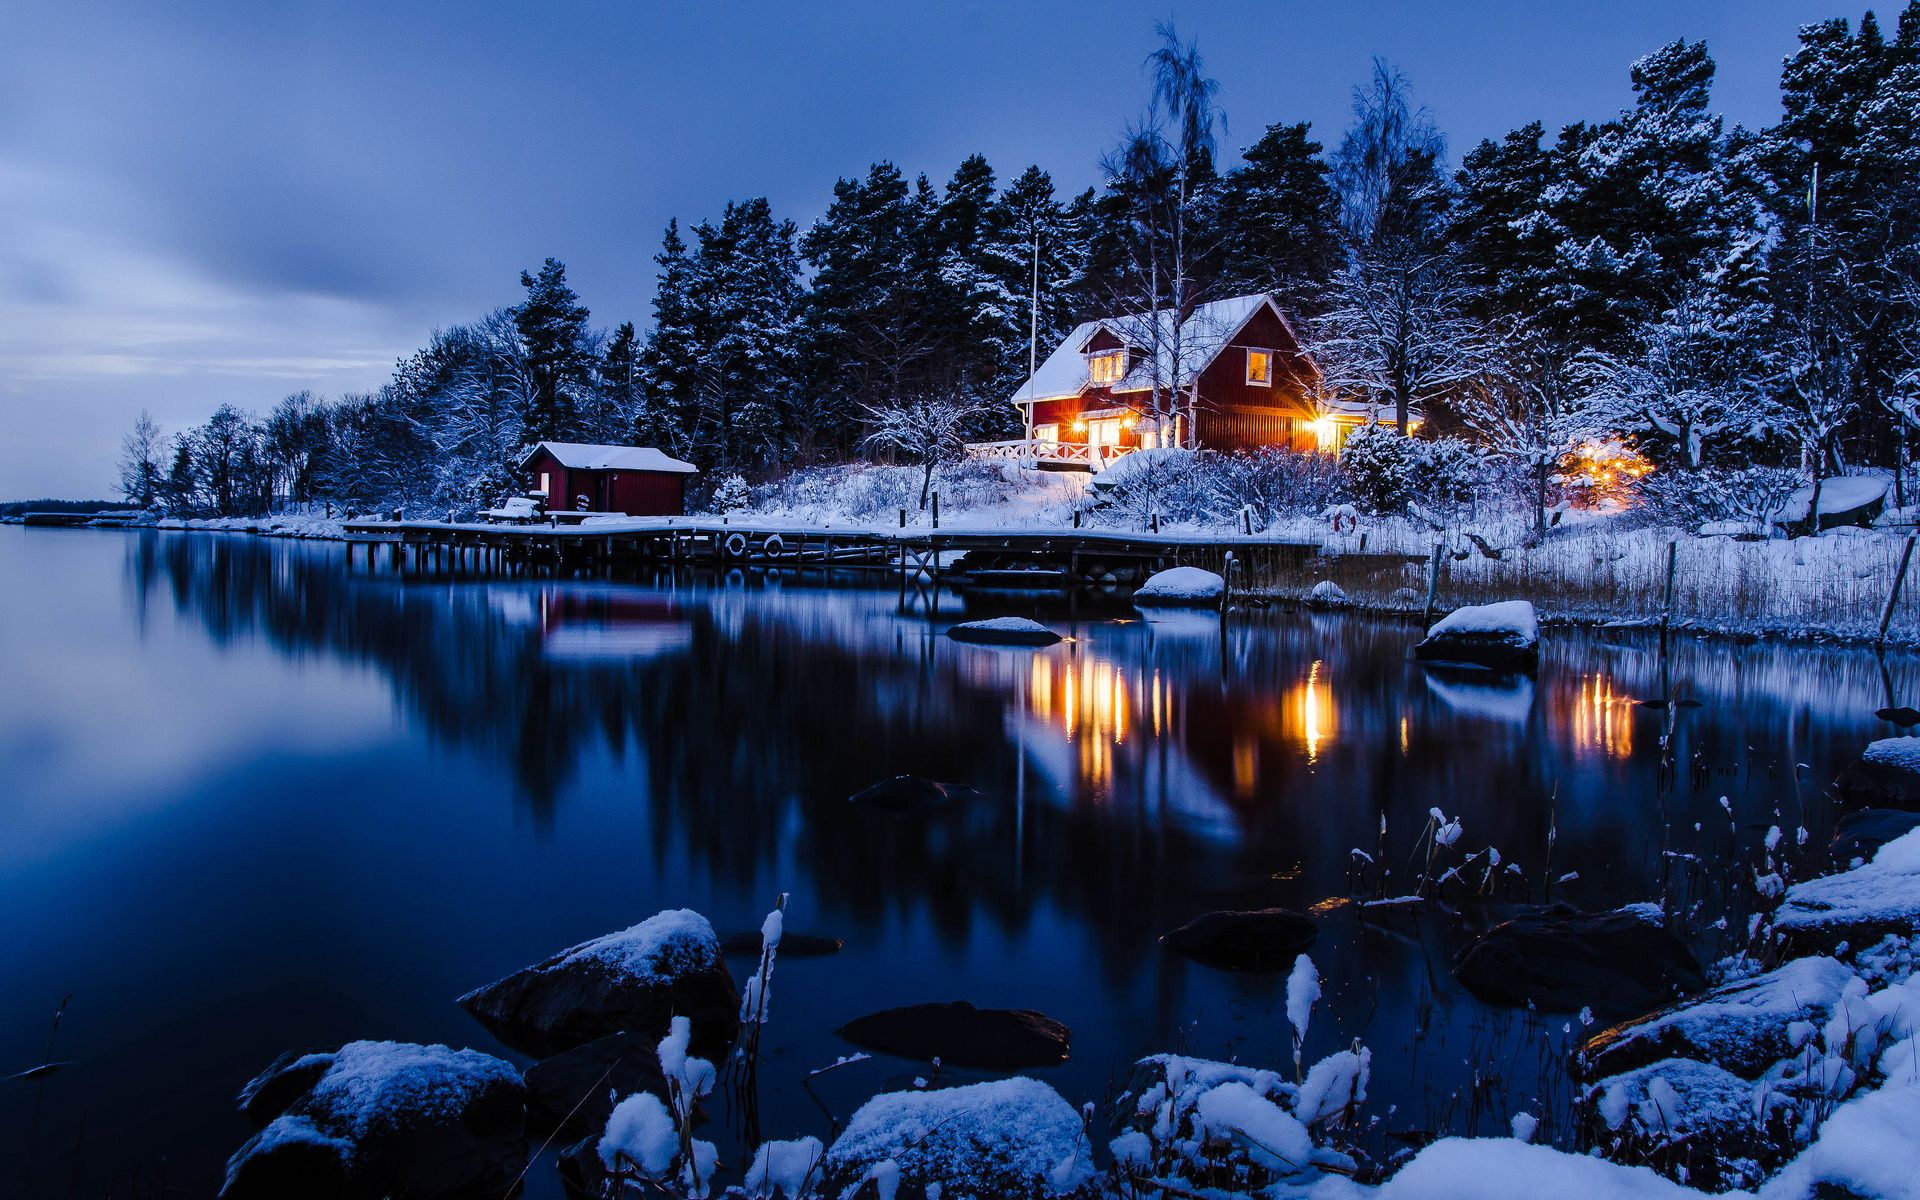 Snowy Night Wallpapers Top Free Snowy Night Backgrounds